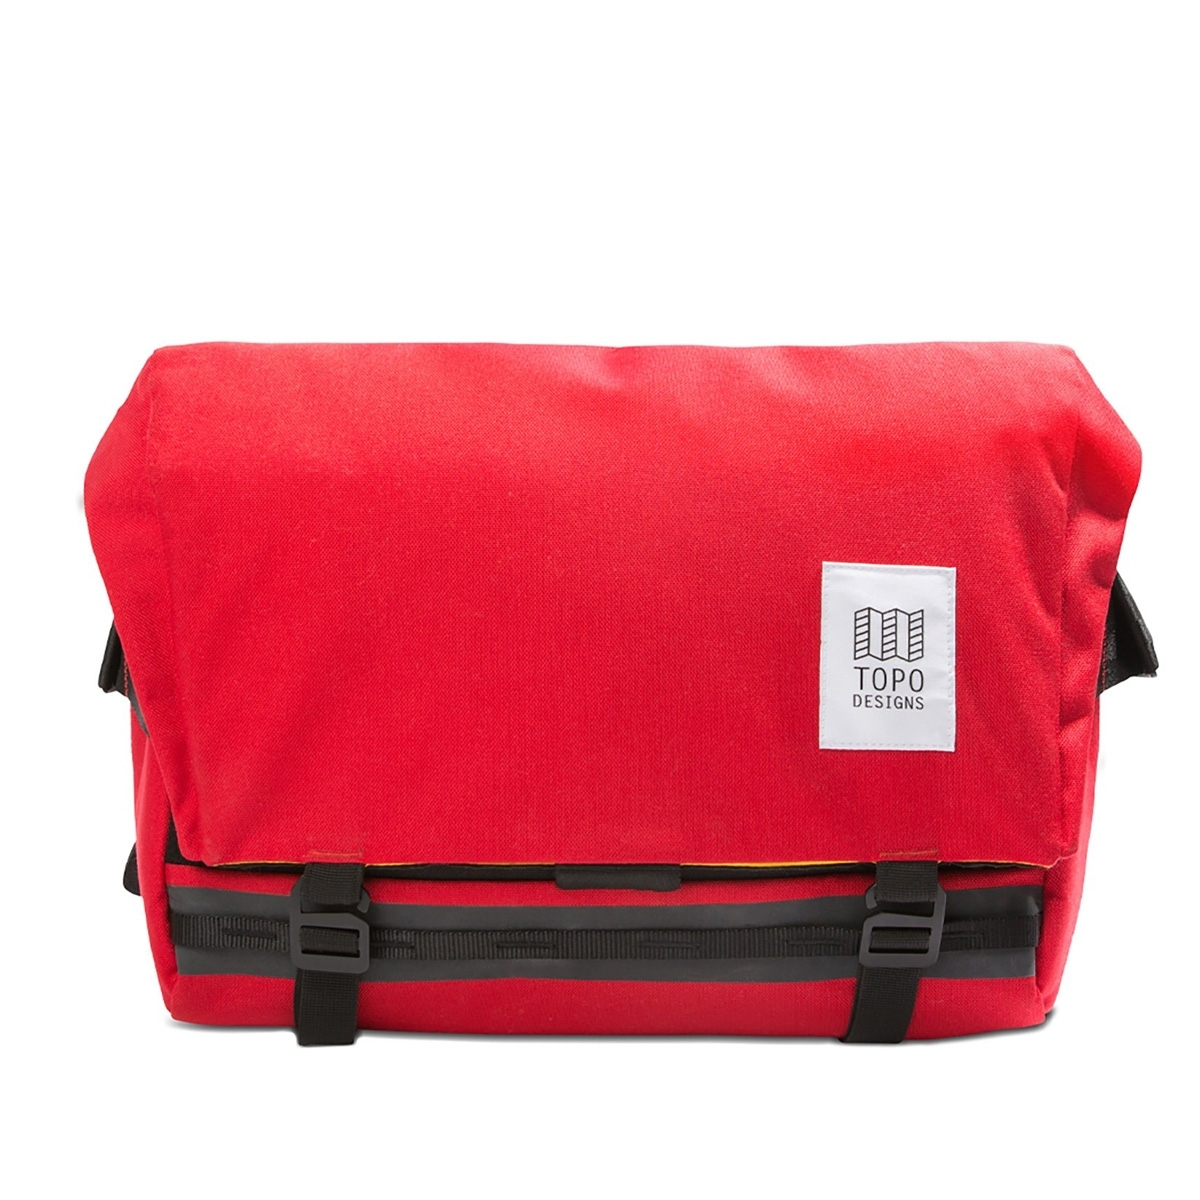 Topo Designs Messenger Bag Red